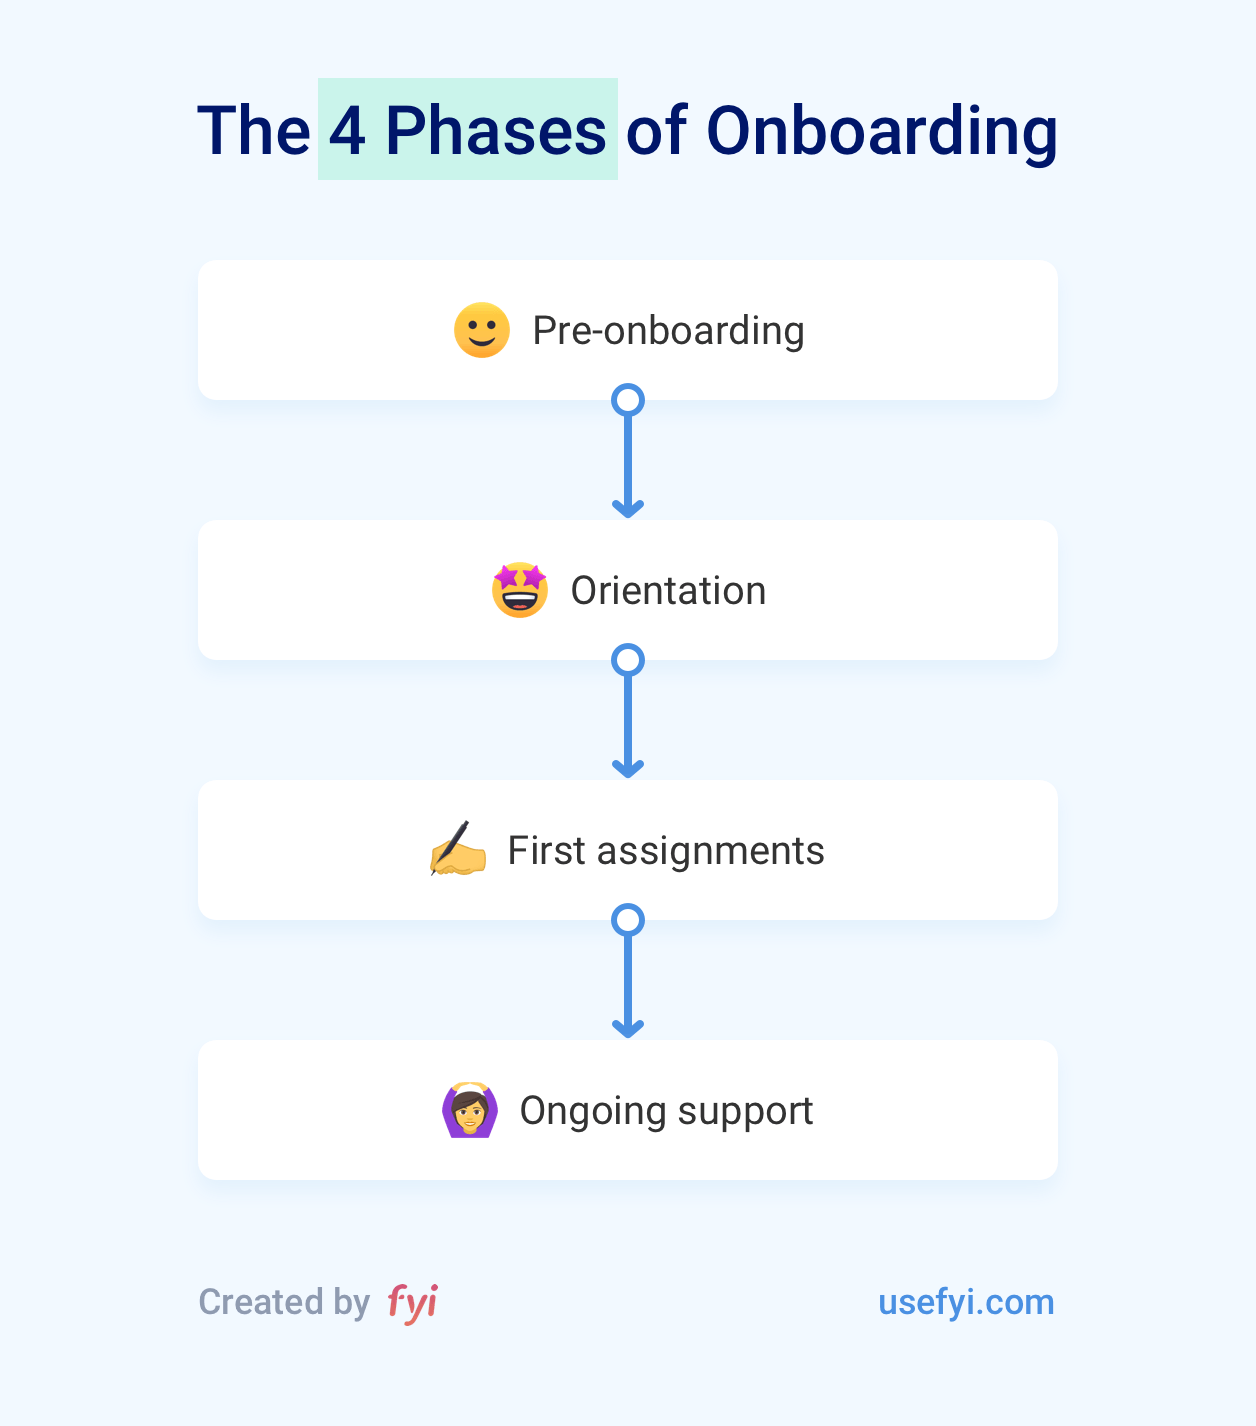 The 4 Phases of Onboarding